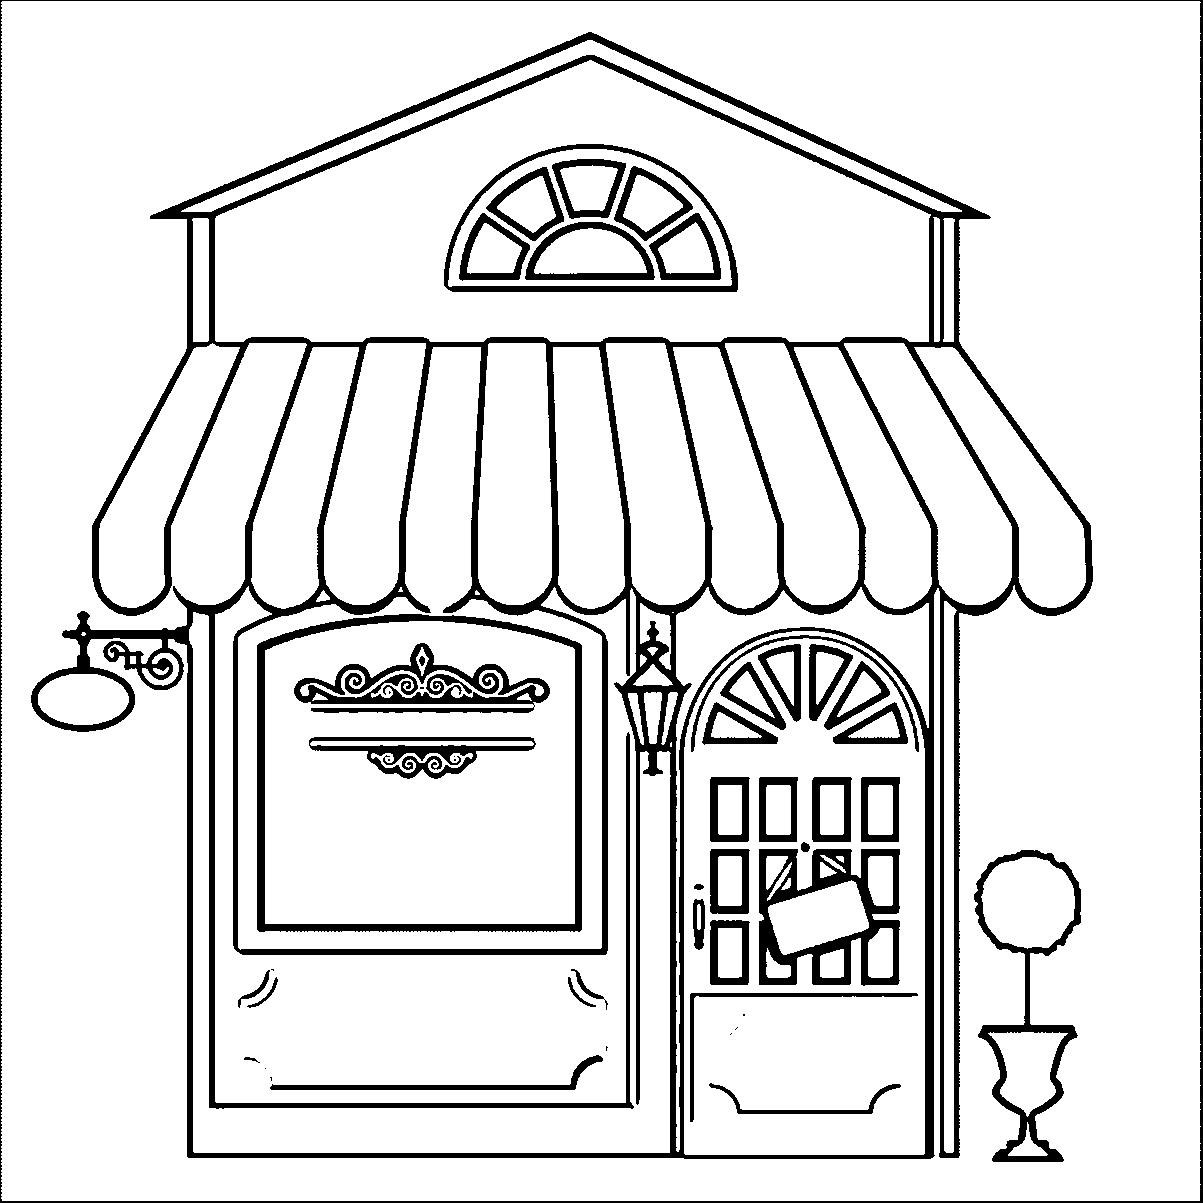 Coloring Pages for Restaurants Free Collection Of Coloring Pages for Restaurants to Print Collection